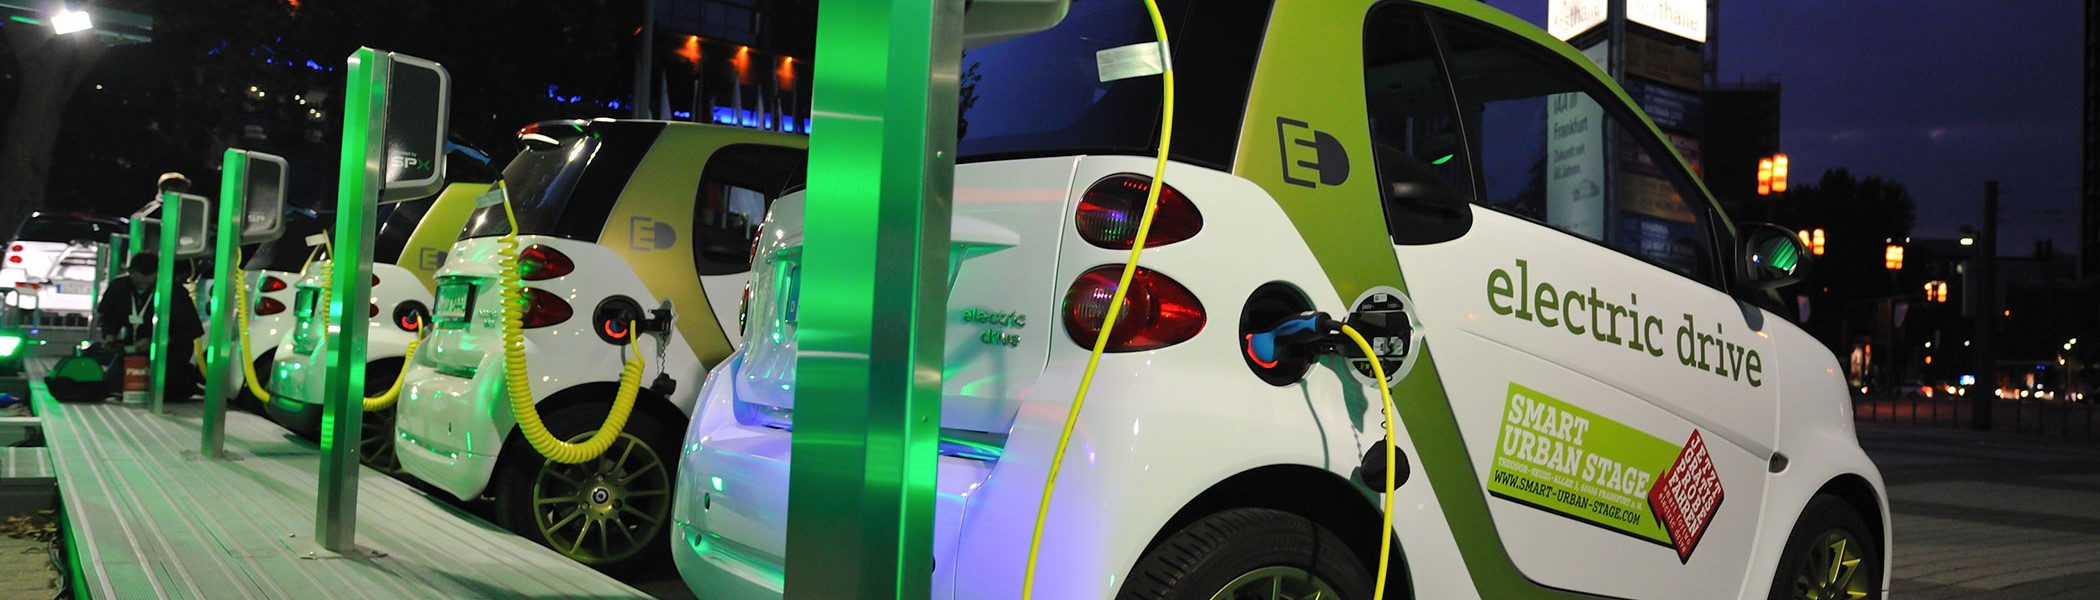 Electric-vehicle charging network sparks Europe-wide power struggle